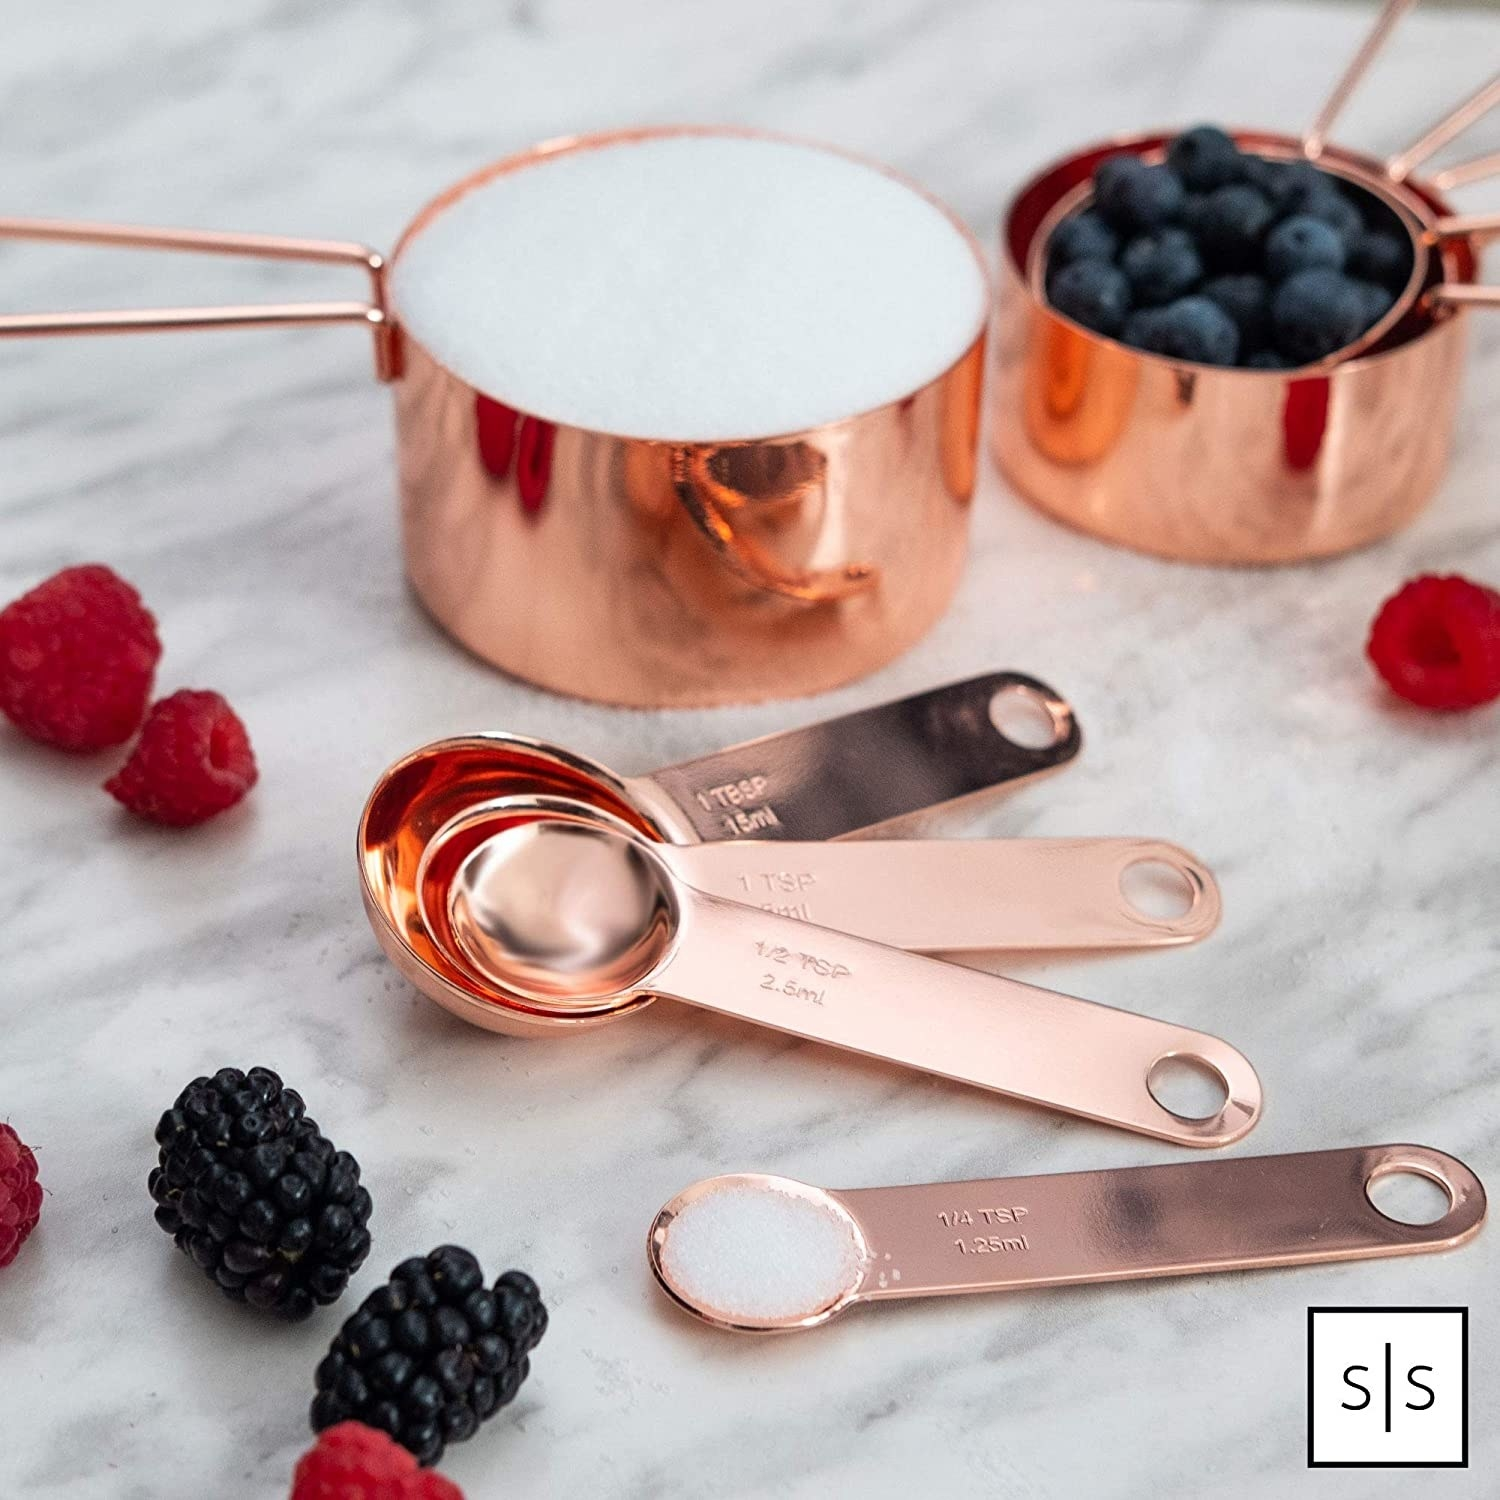 The cup and teaspoon/tablespoons measuring cups in rose gold displayed on a table.